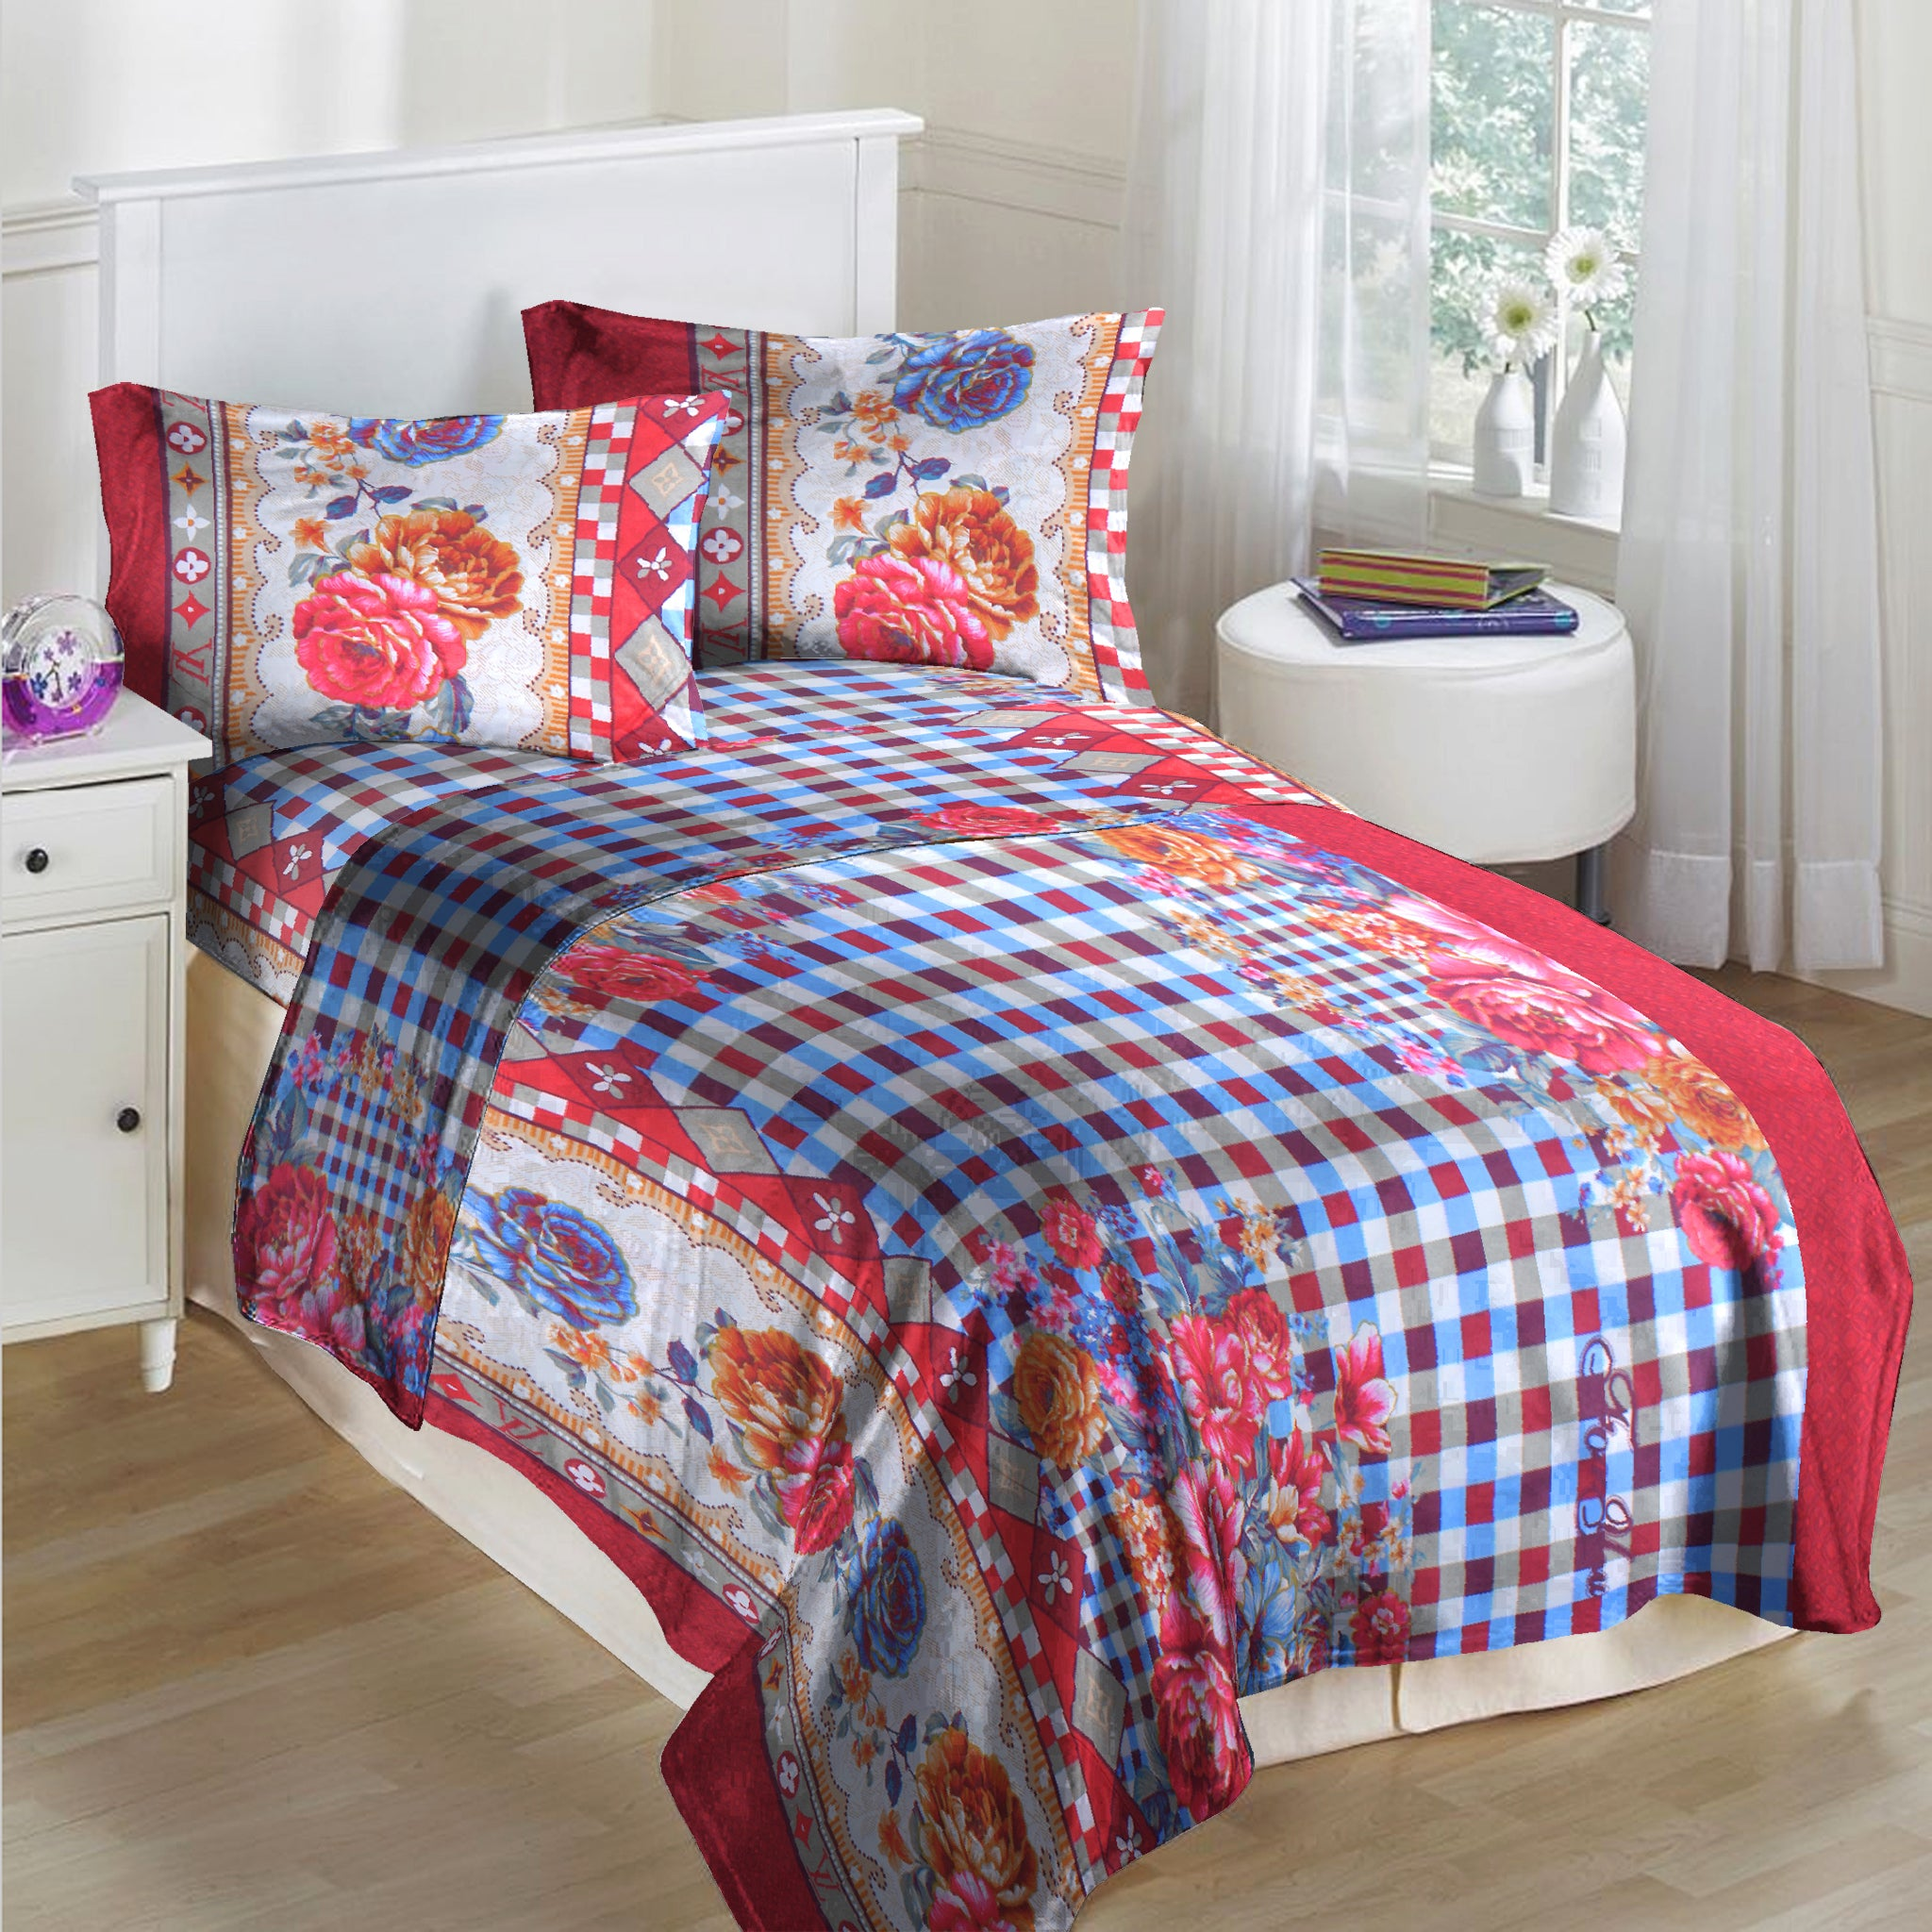 5D Oker's Island 100% Cotton Sutton Printed Single Bed Sheet & Pillow Set-BE5619